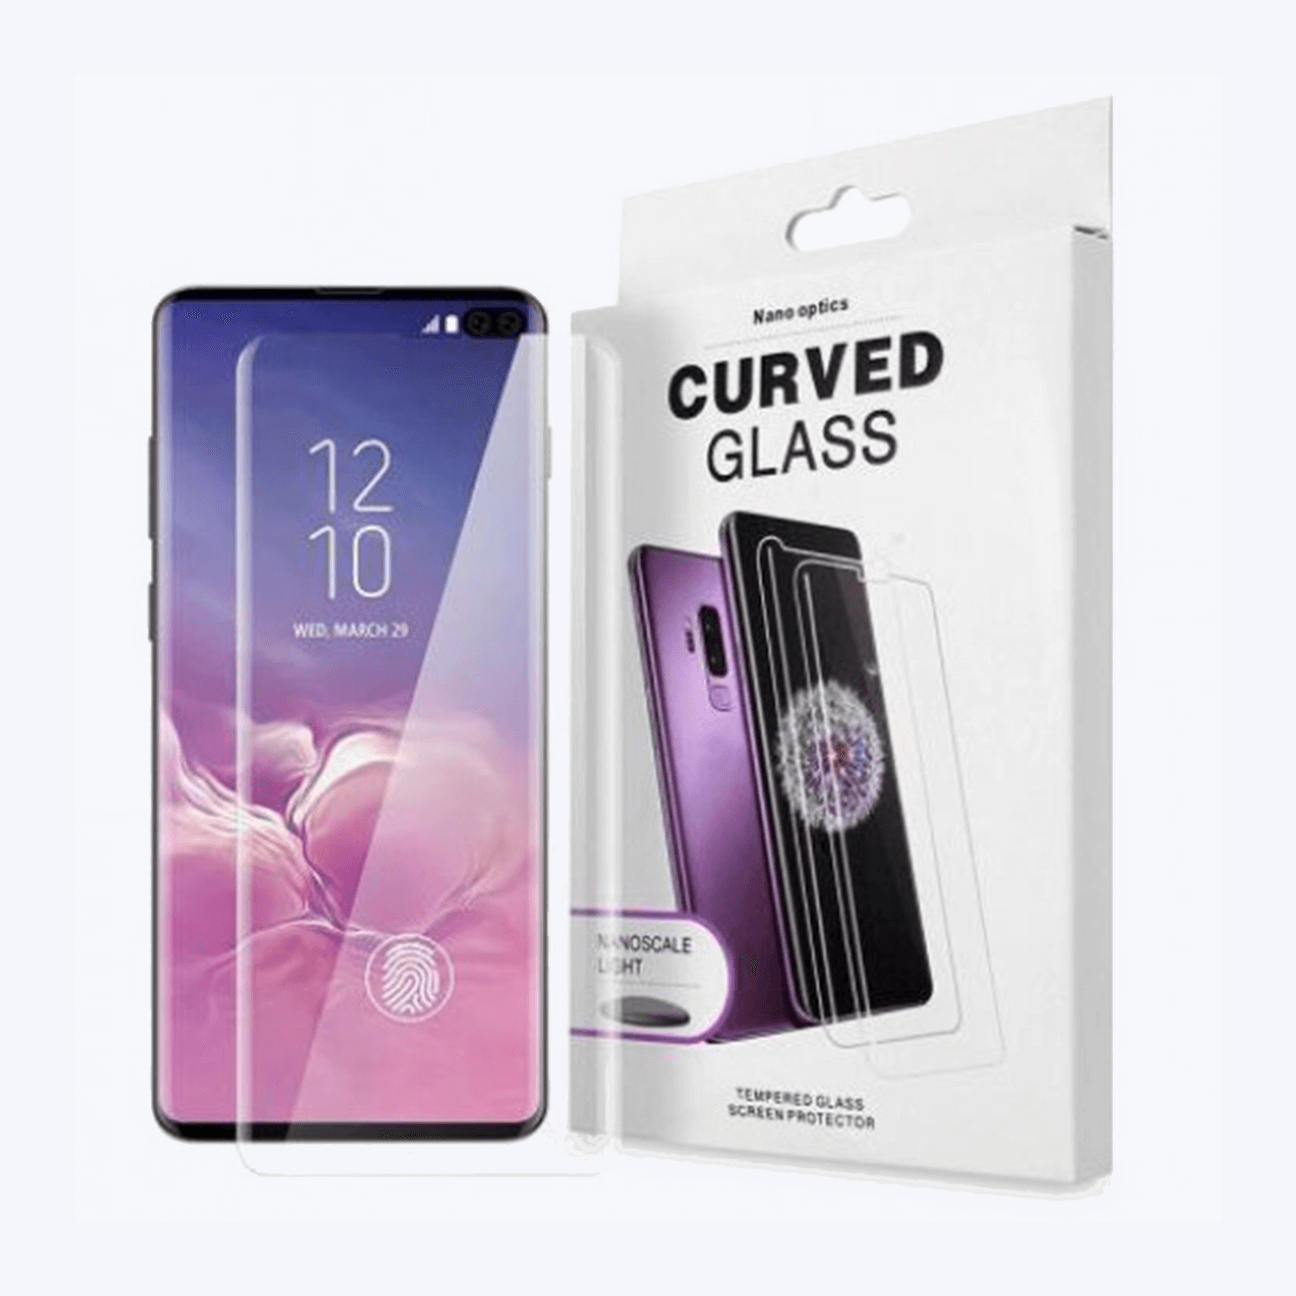 Samsung Galaxy Note 10 Curve UV Mobile Glass